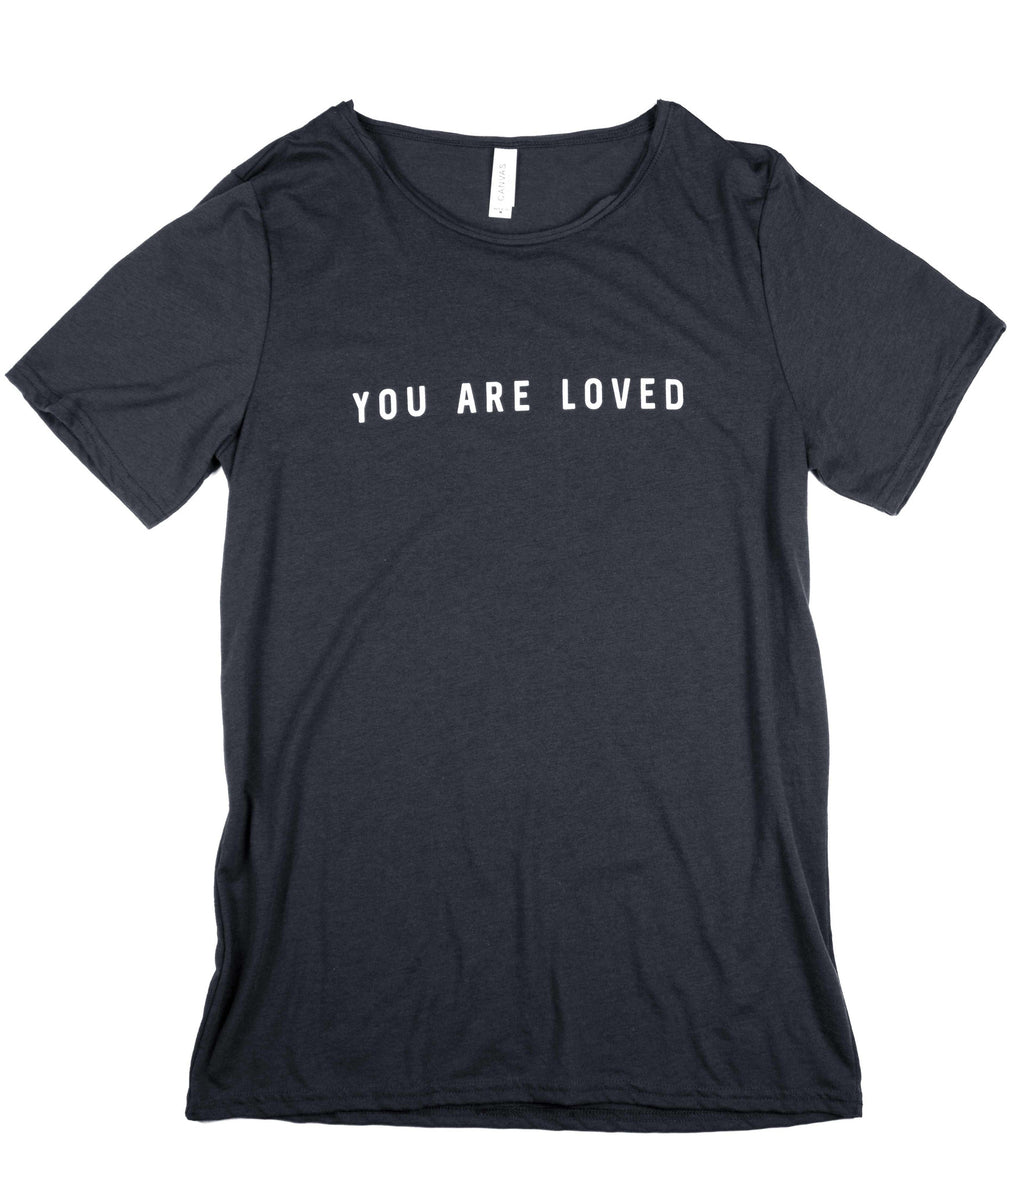 YOU ARE LOVED DARK GREY RAW NECK T-SHIRT